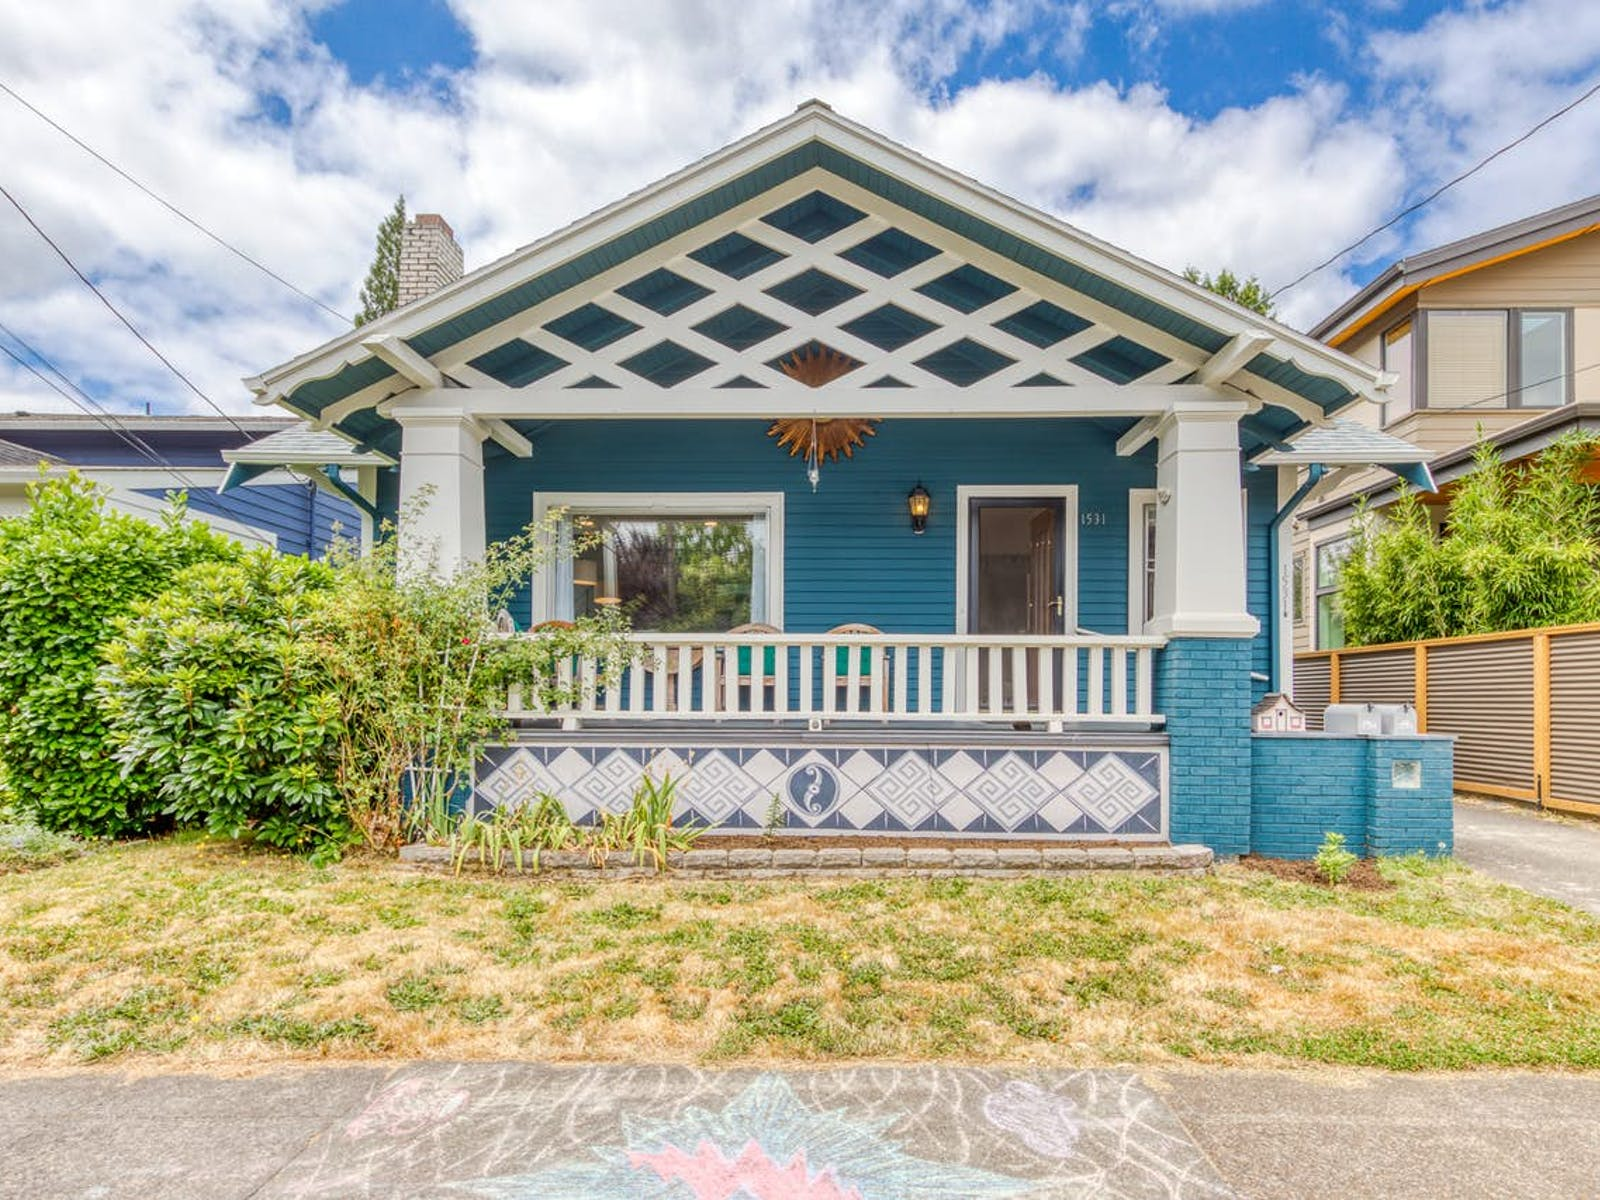 portland, or vacation bungalow